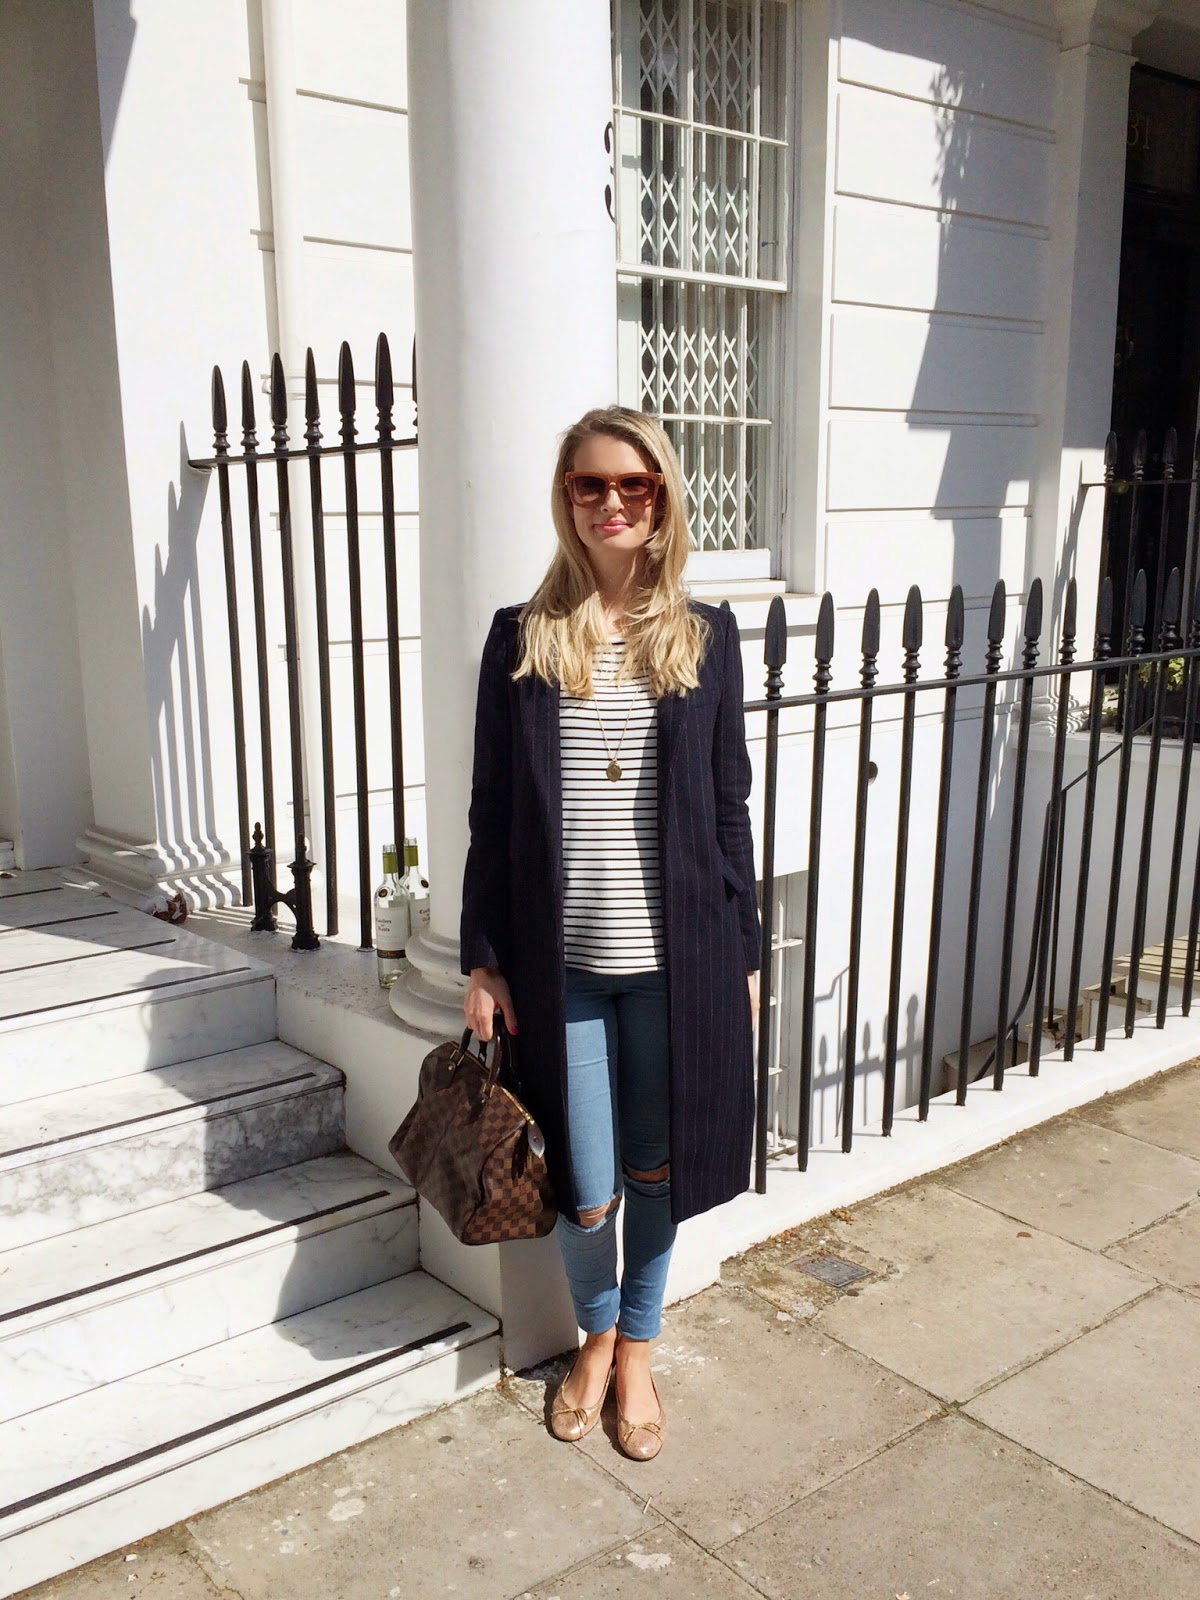 blue long coat, pinstriped long coat, striped jumper, breton top, louis vuitton, louis vuitton speedy, louis vuitton speedy bag, french sole shoes, french sole ballet flats, zara sunglasses, celine look a like sunglasses